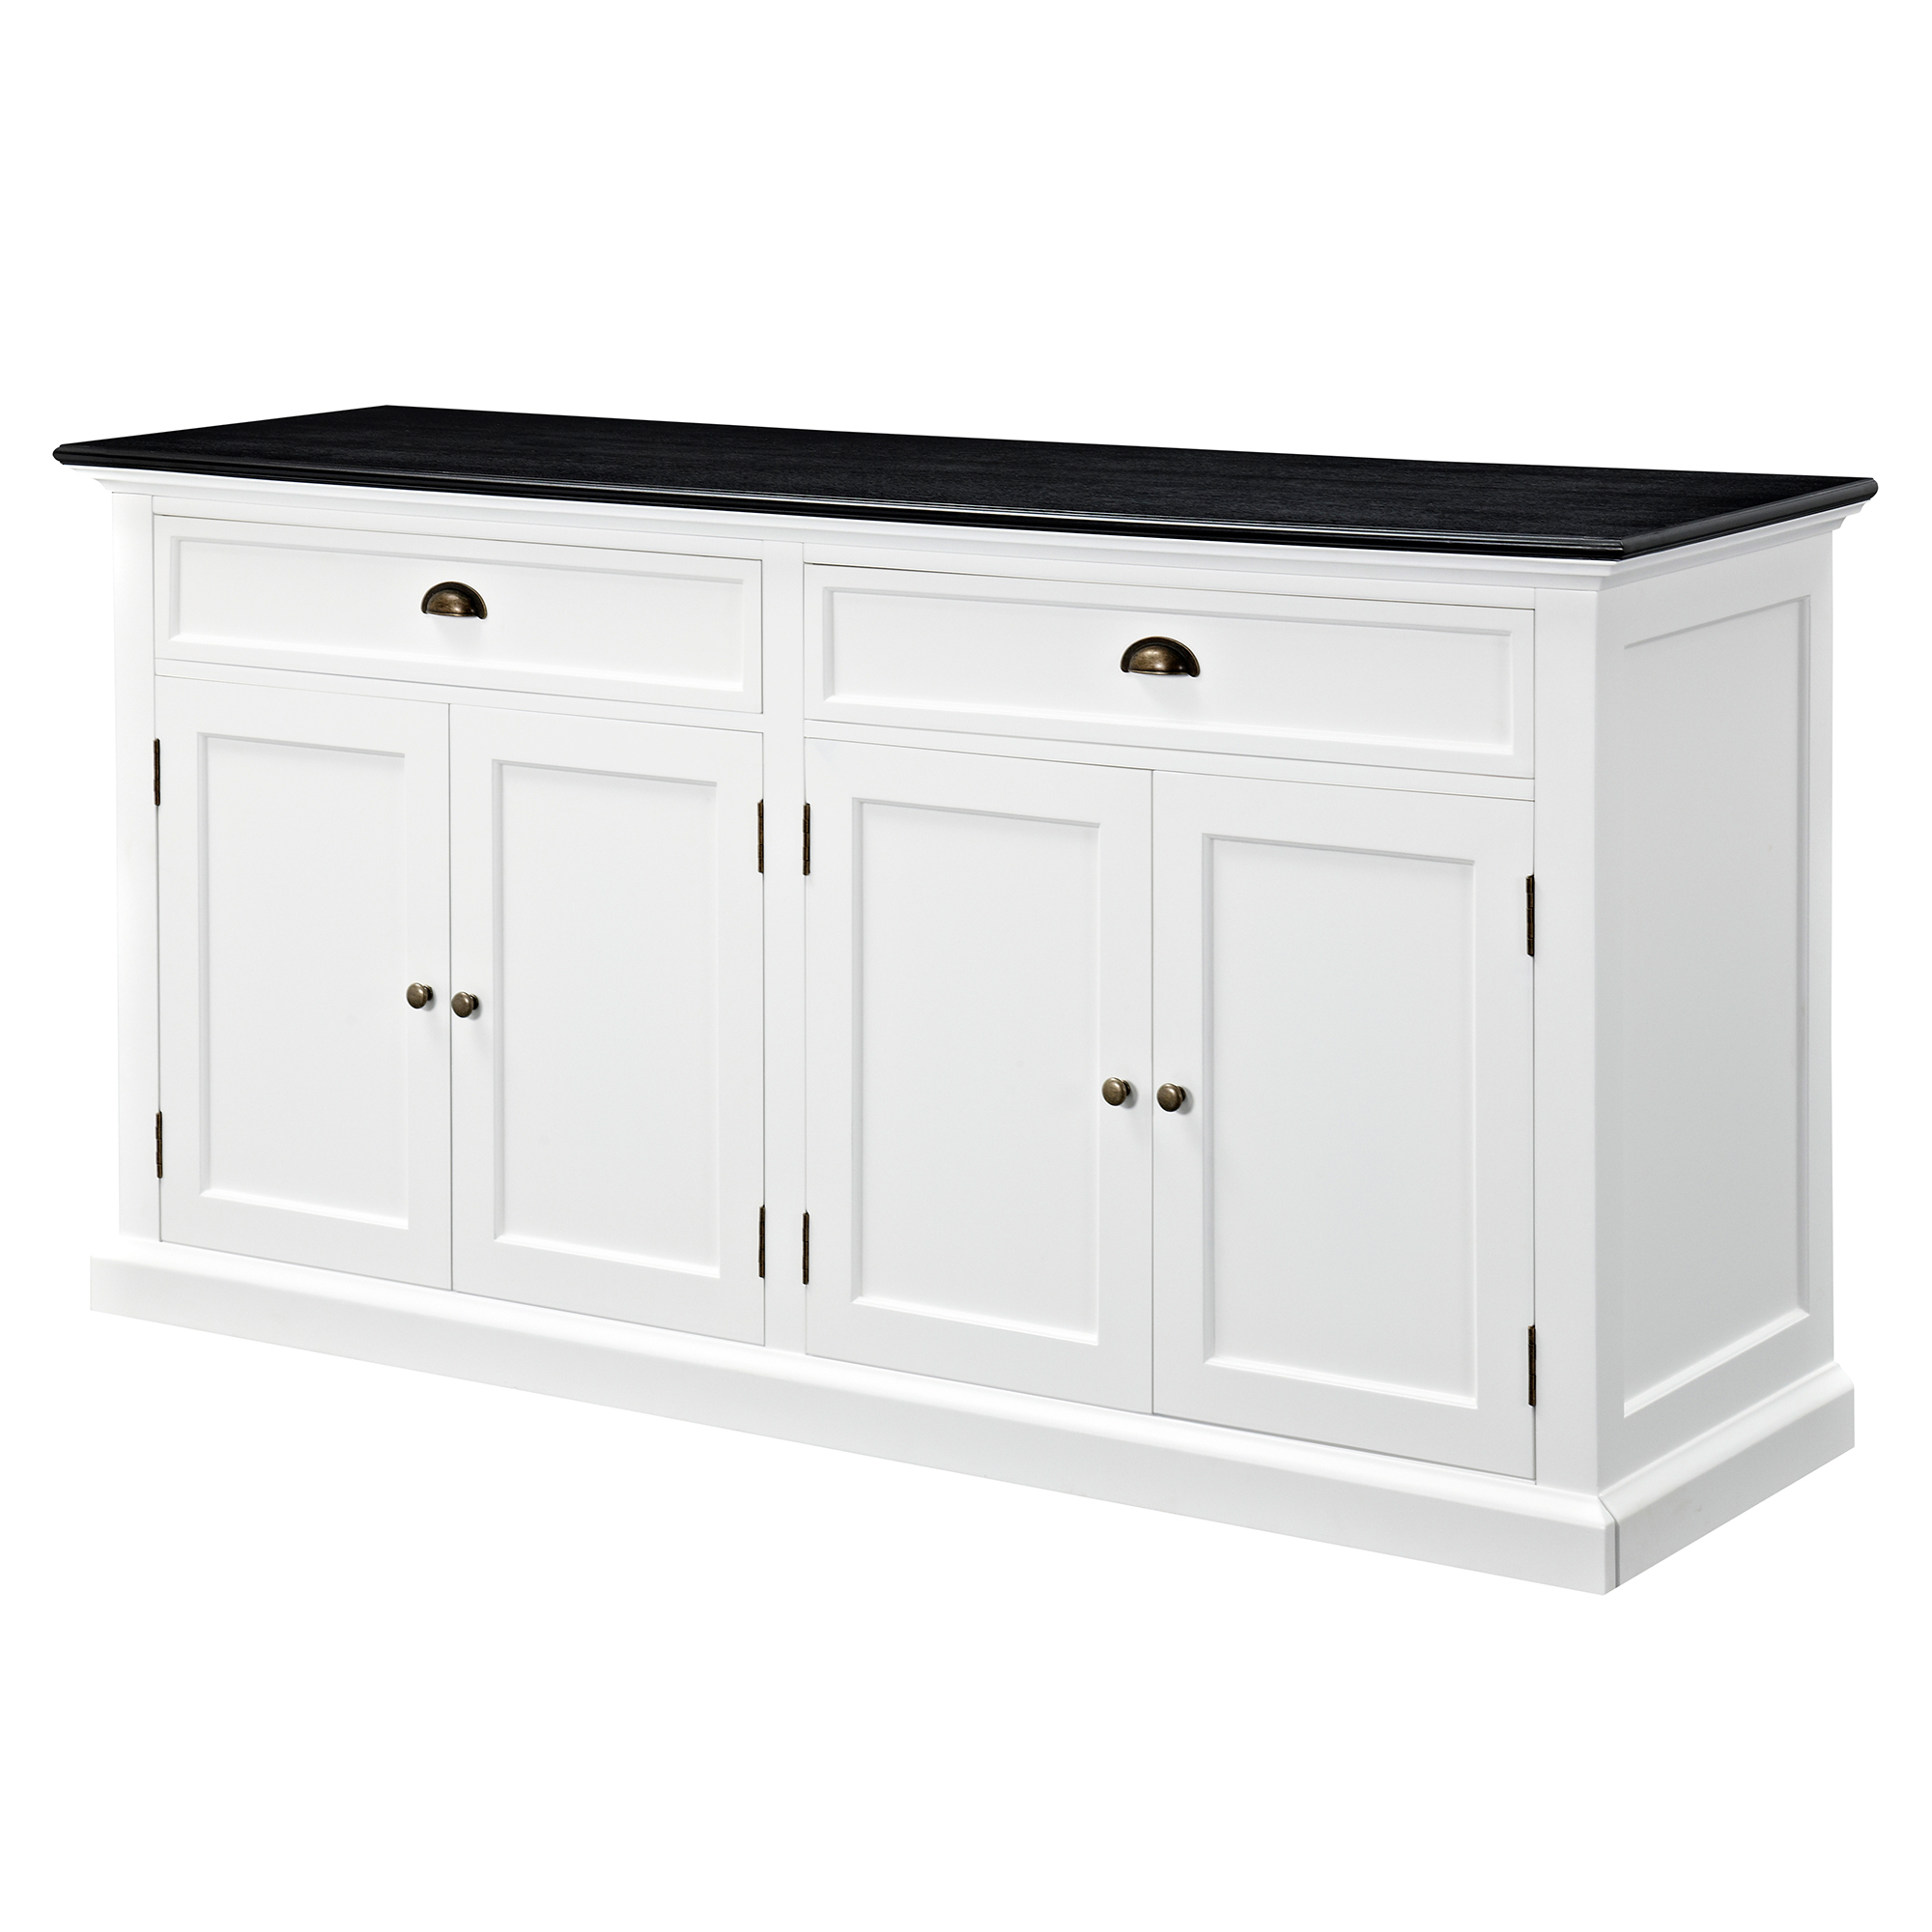 Hamptons Large Sideboard Buffet - Black Top pertaining to Thite Sideboards (Image 12 of 30)